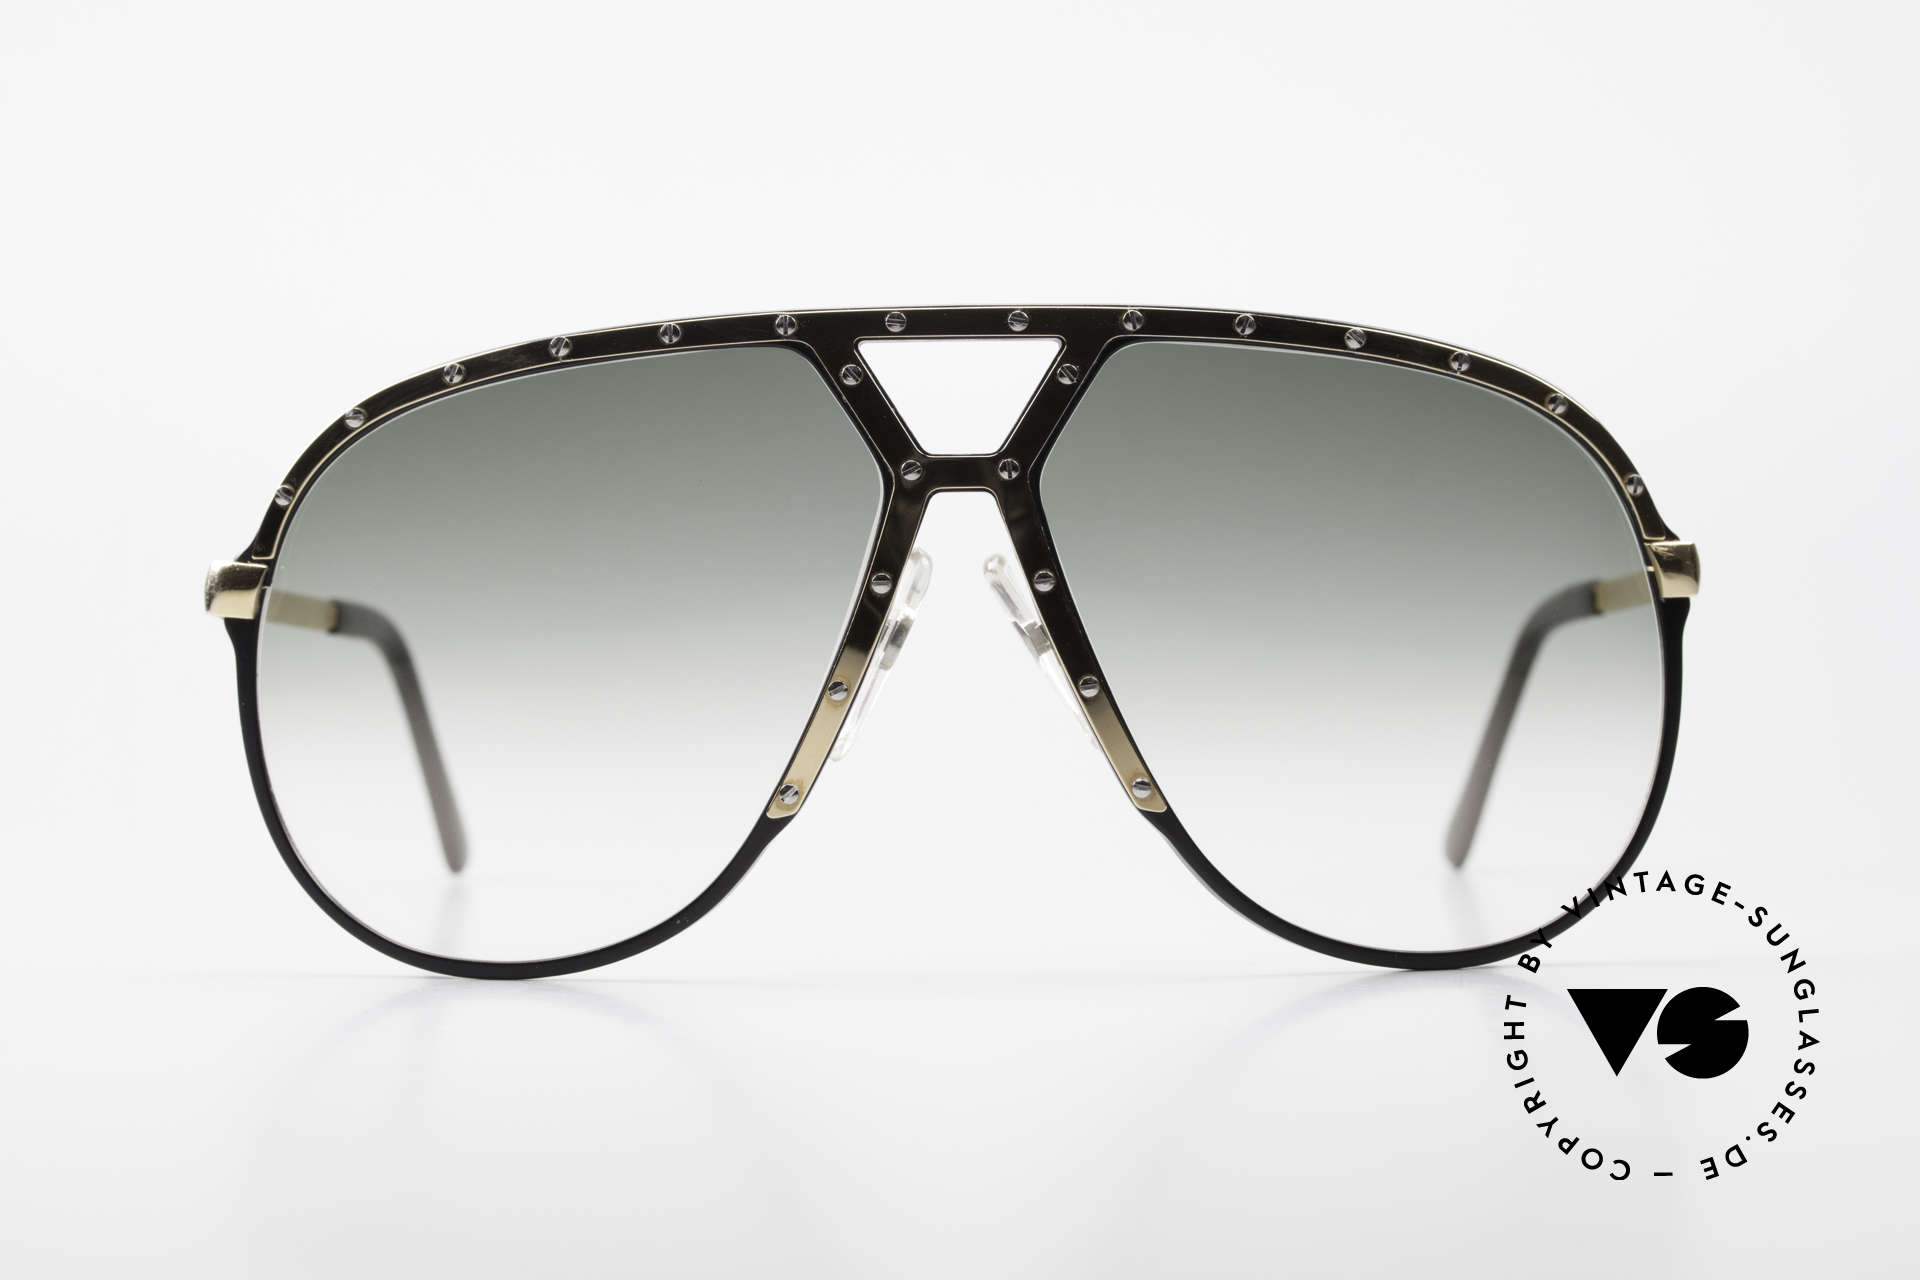 Alpina M1 80's Sunglasses West Germany, Stevie Wonder made the M1 model his trademark, Made for Men